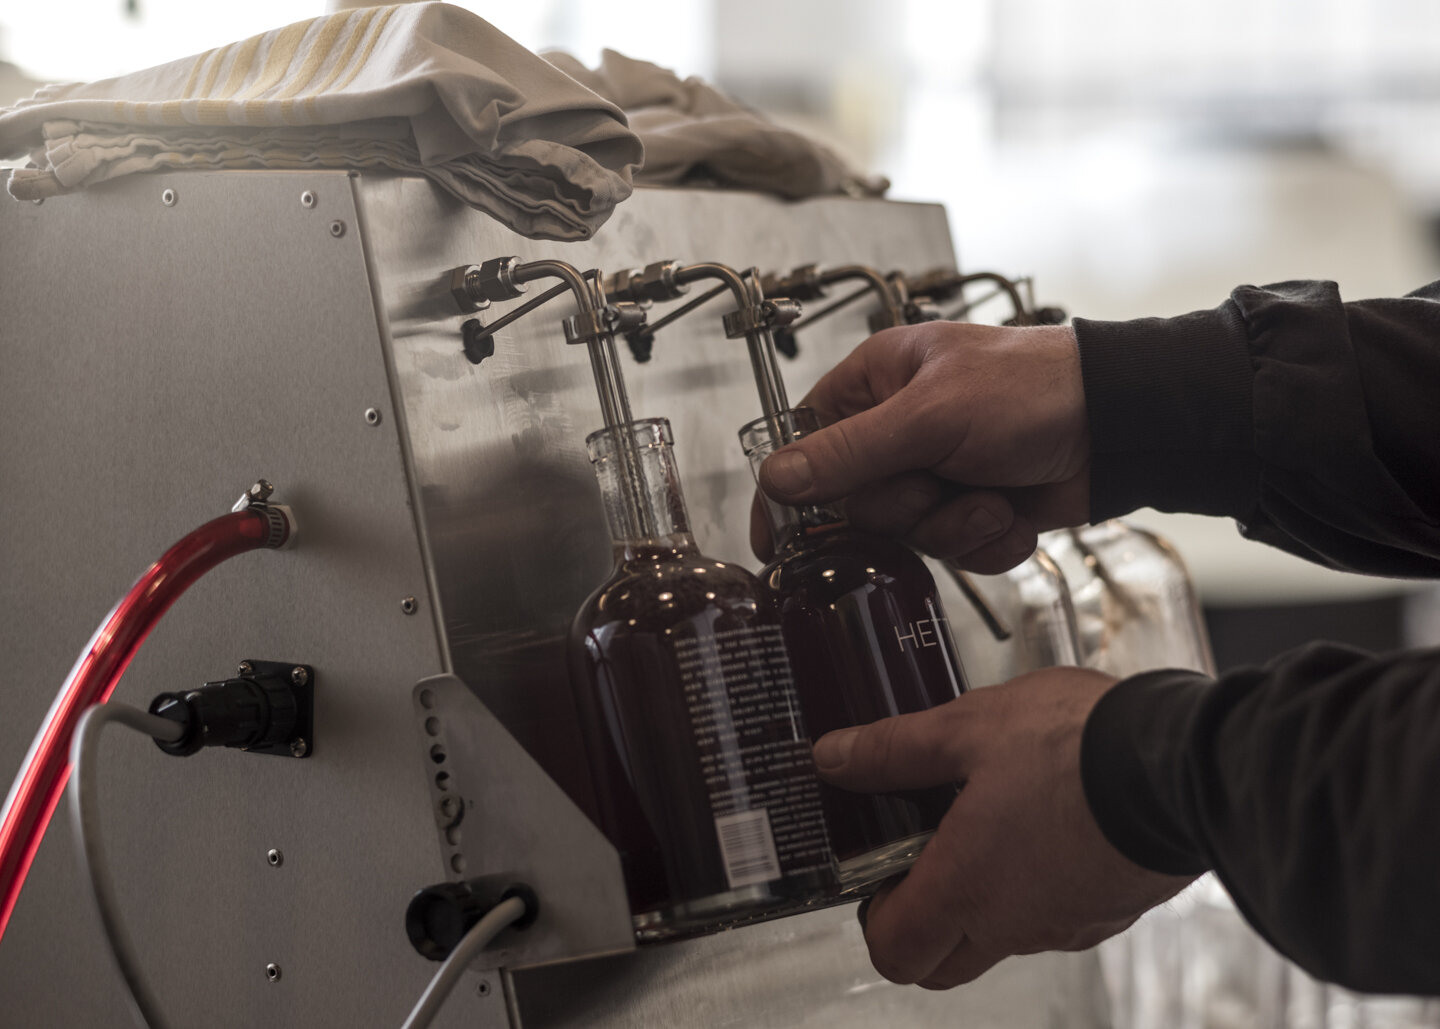 Kevin is a master at bottling, filling four bottles continuously and simultaneously, inserting a rubber stopper, and passing them down the line.